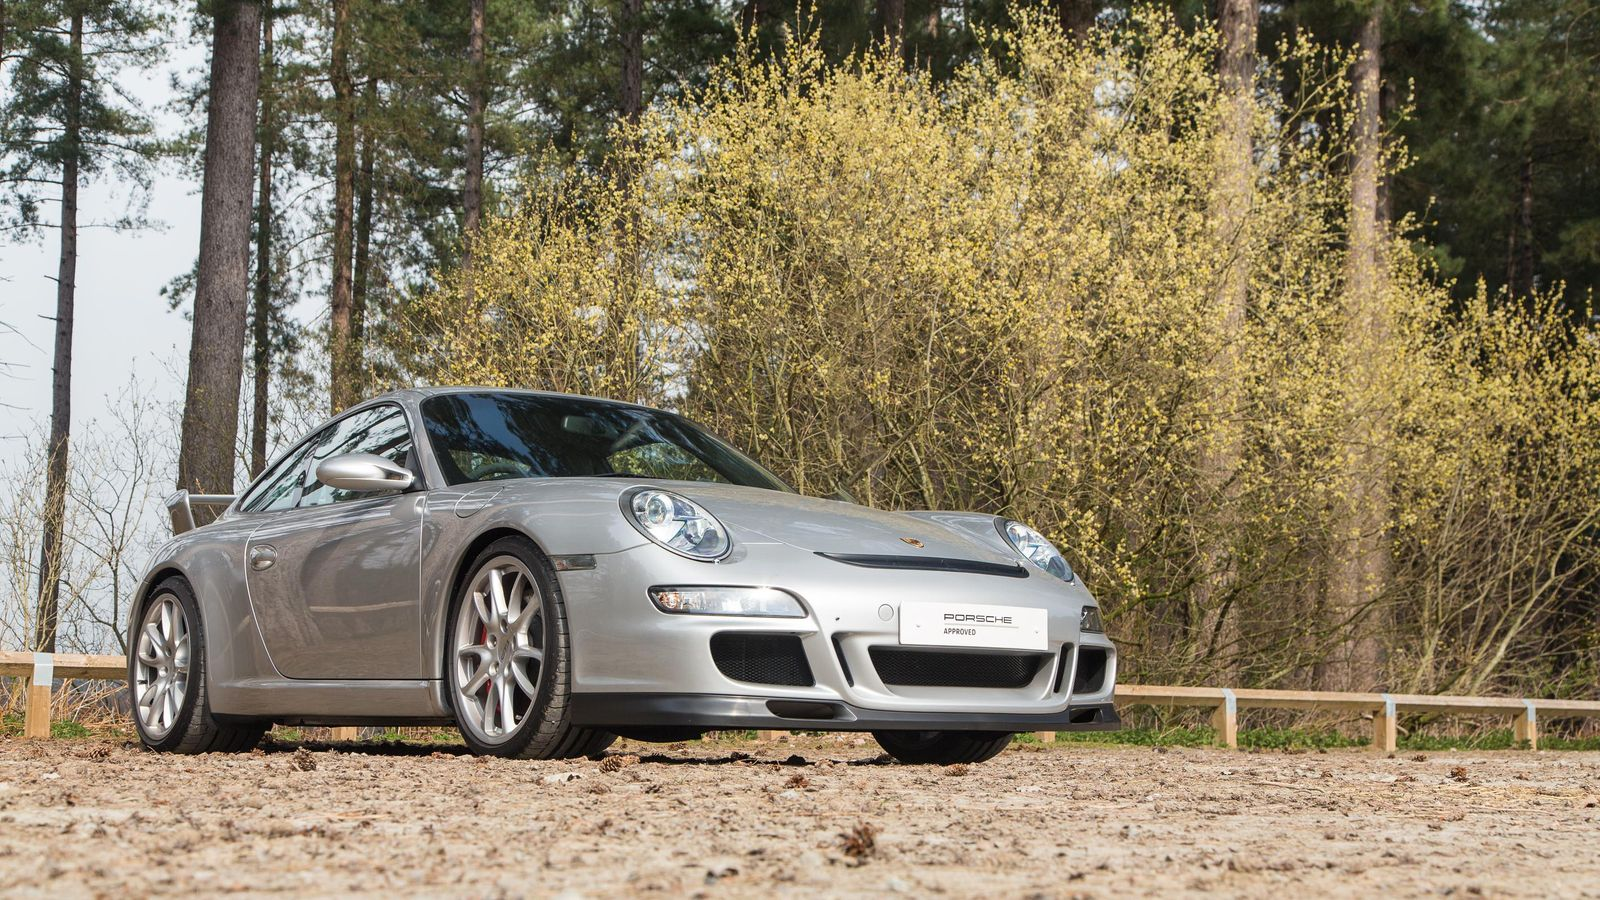 Porsche Approved with Grilles c1600x900.jpg